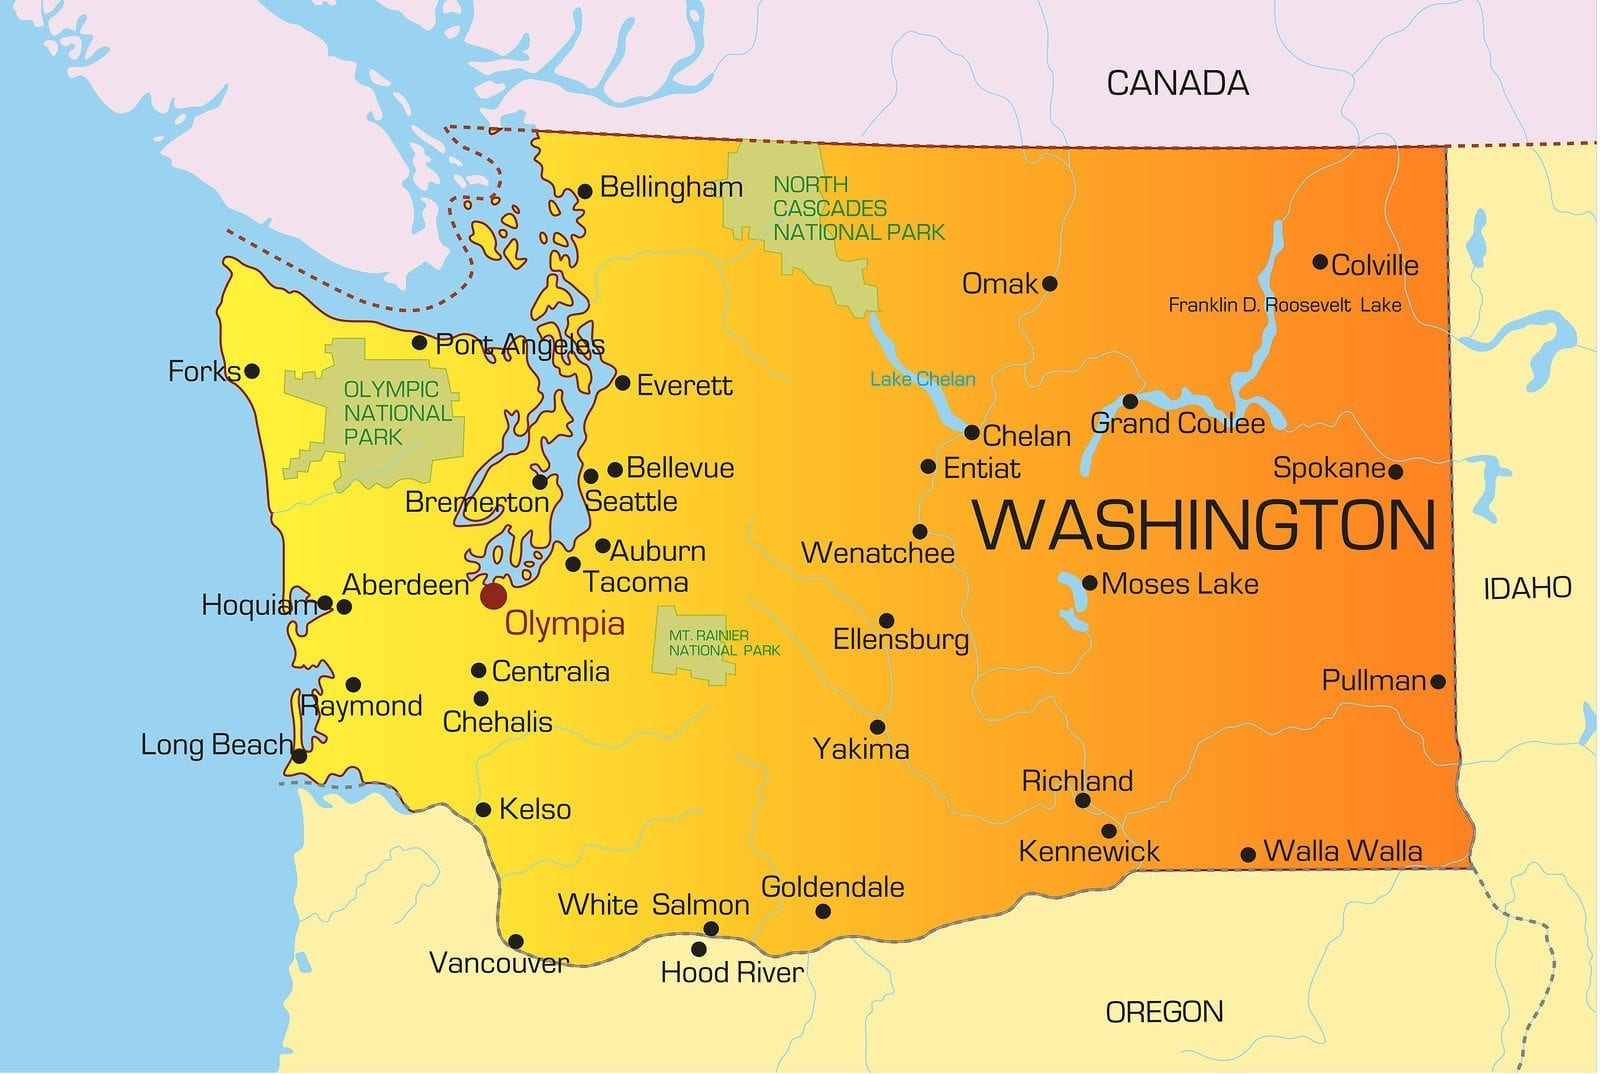 Washington LPN Requirements and Training Programs